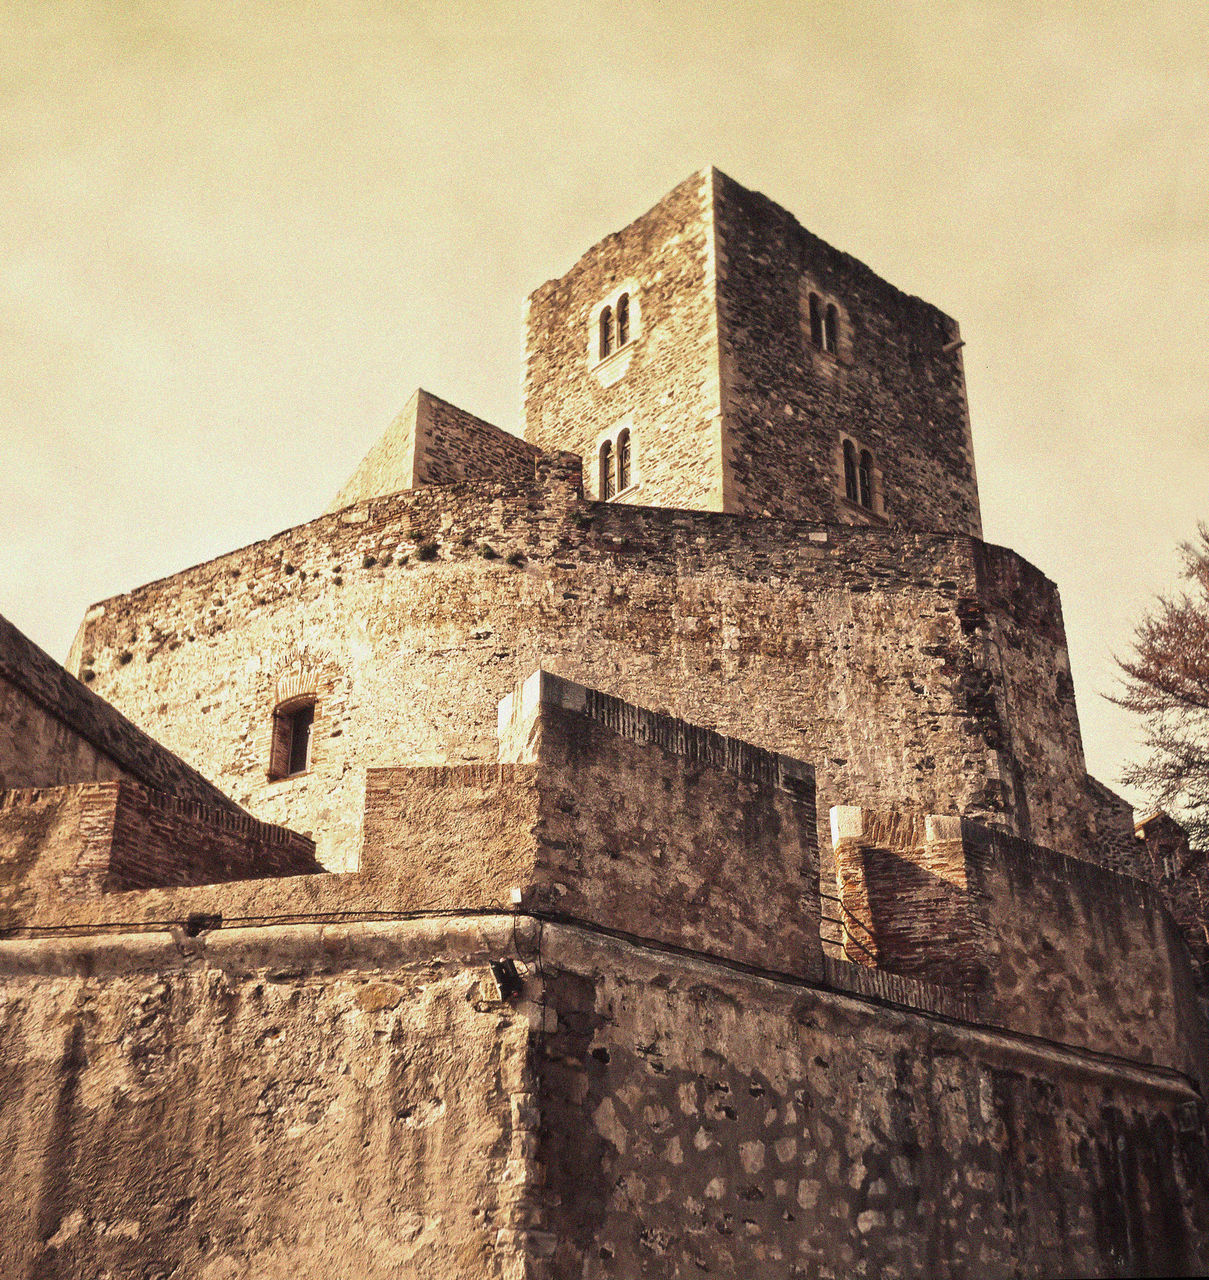 architecture, history, built structure, building exterior, low angle view, the past, no people, castle, fort, old ruin, ancient, day, brick wall, ancient civilization, travel destinations, outdoors, sky, past